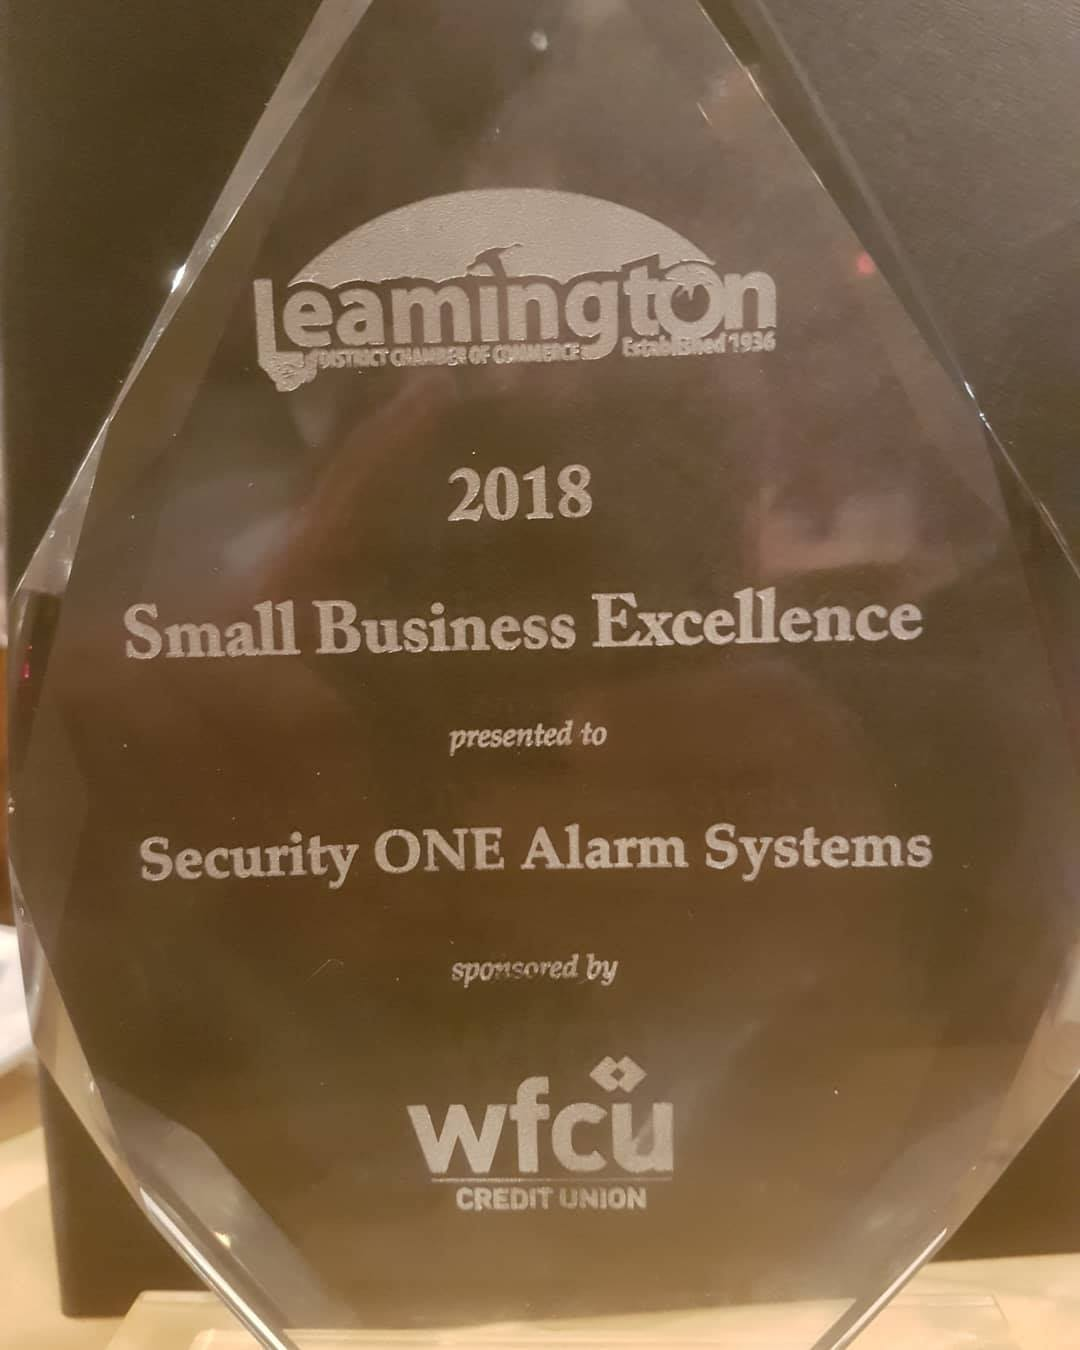 Security One Wins Small Business Excellence Alarm Systems A Time Only Burglar Is An Acknowledged Leader In The Monitoring Industry Having Won 7 Consecutive Life Safety Awards 6